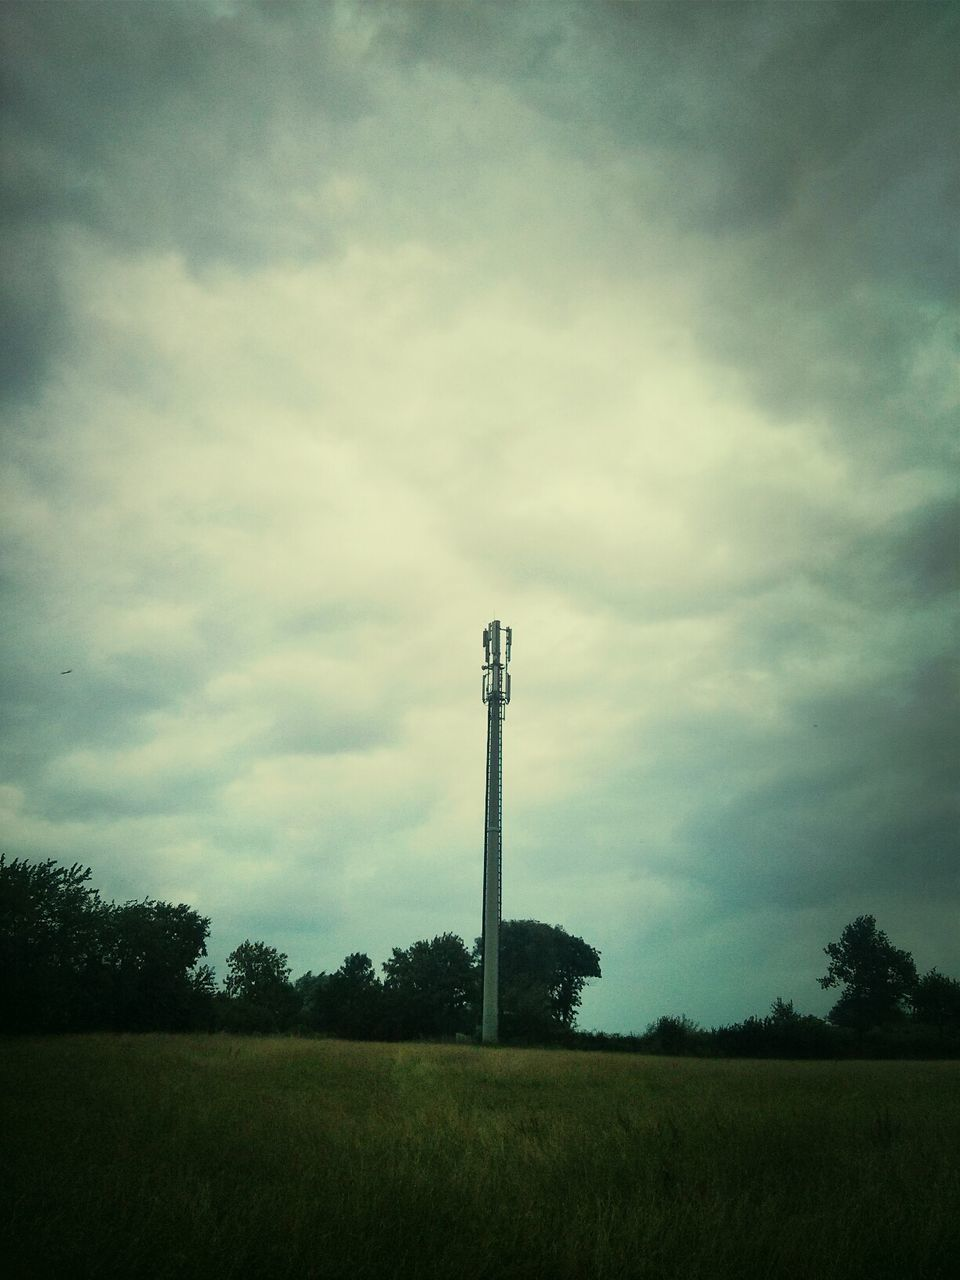 Communications Tower On Grassy Field Against Cloudy Sky